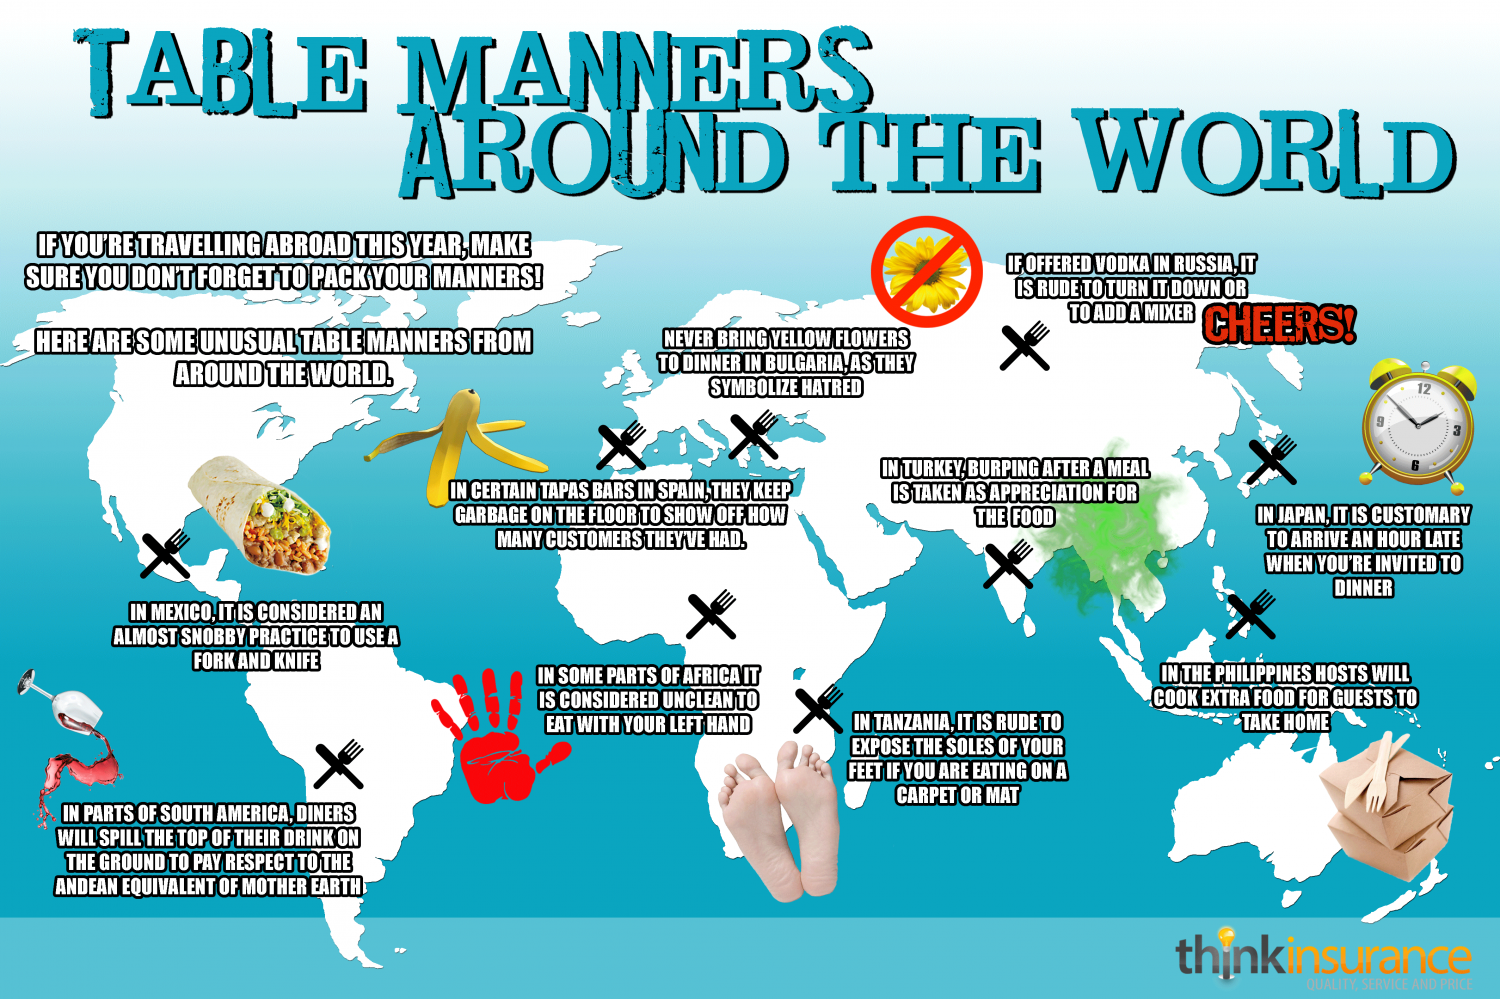 a world guide to good manners Etiquette-tipscom is both entertaining and informative source to turn to when you need to learn about to say nothing of warmer parts of the world realmenrealstylecom now might be a good time to think about choosing a gift for someone you know graduates this year.